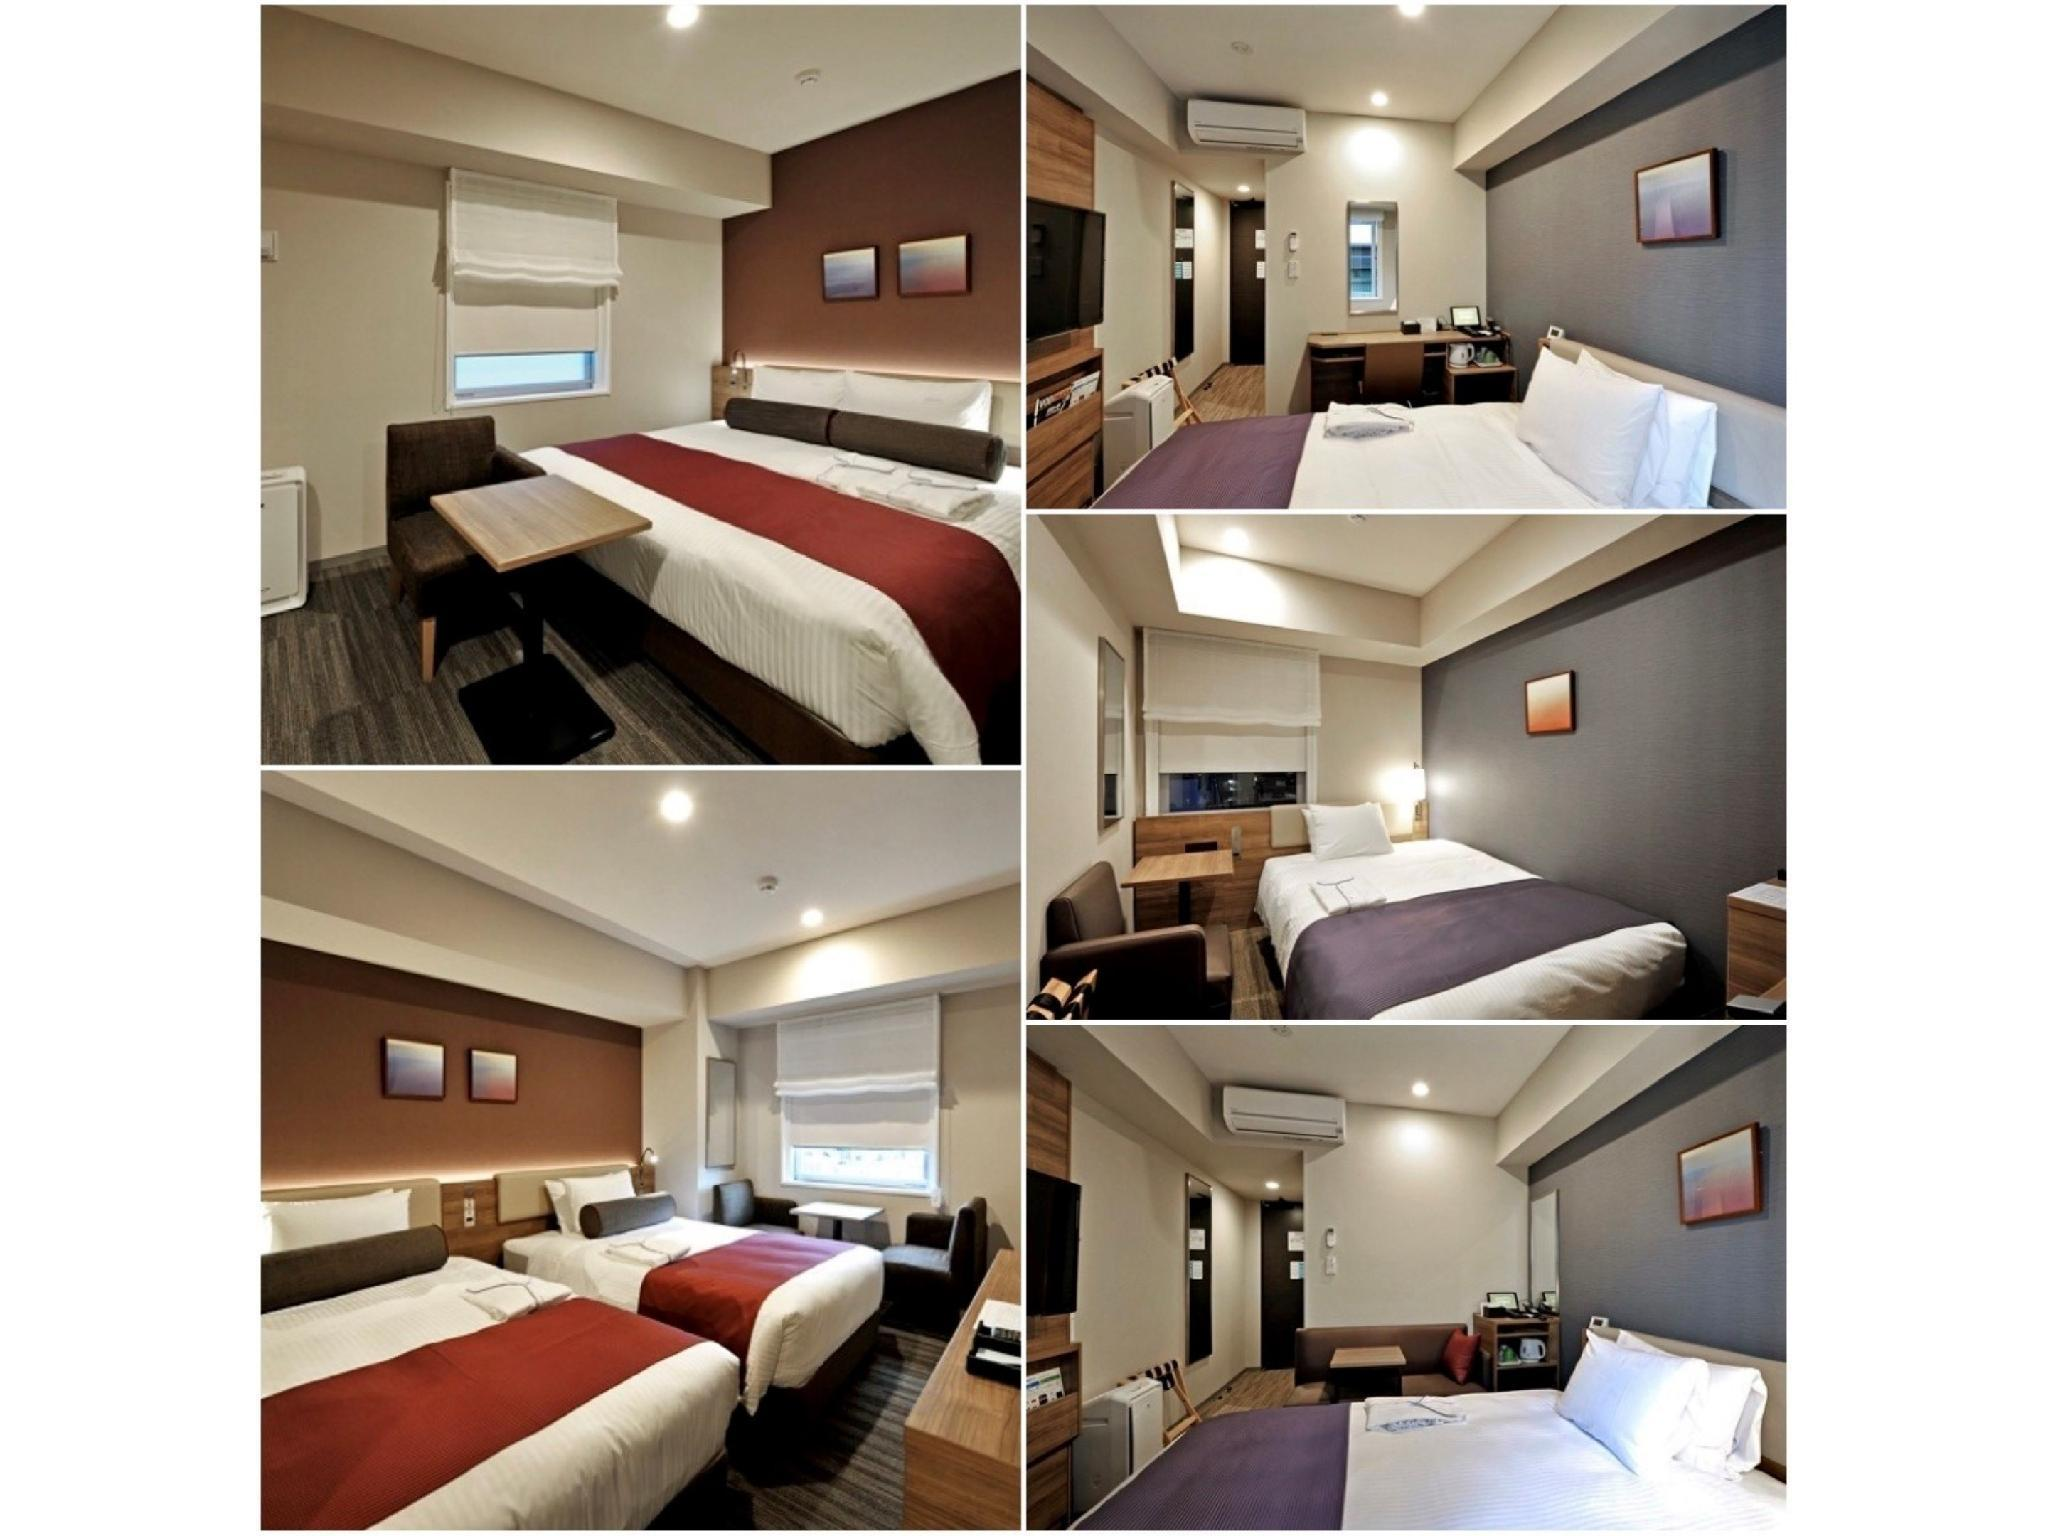 EX Semi-double Room (Type C)